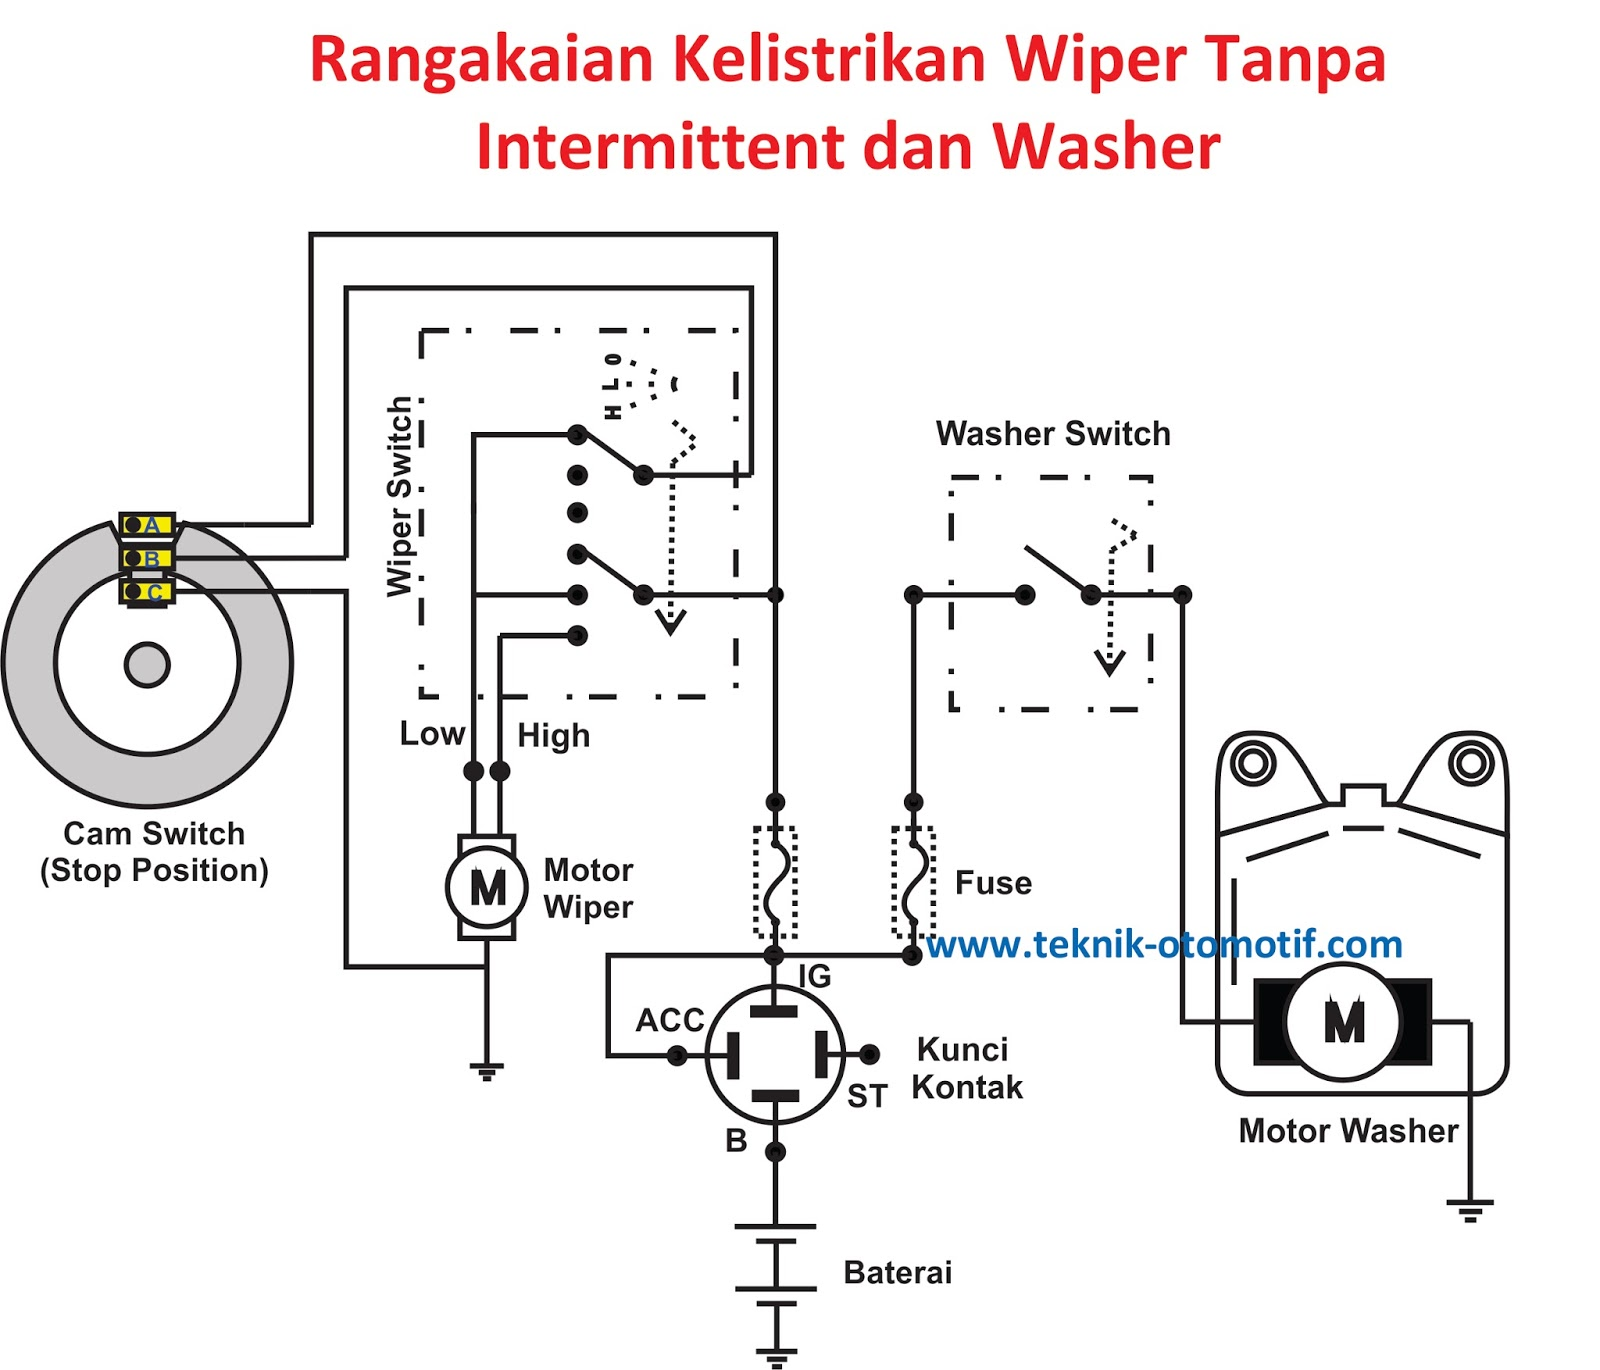 Job Sheet Merangkai Wiper Tanpa Intermittent Dan Washer